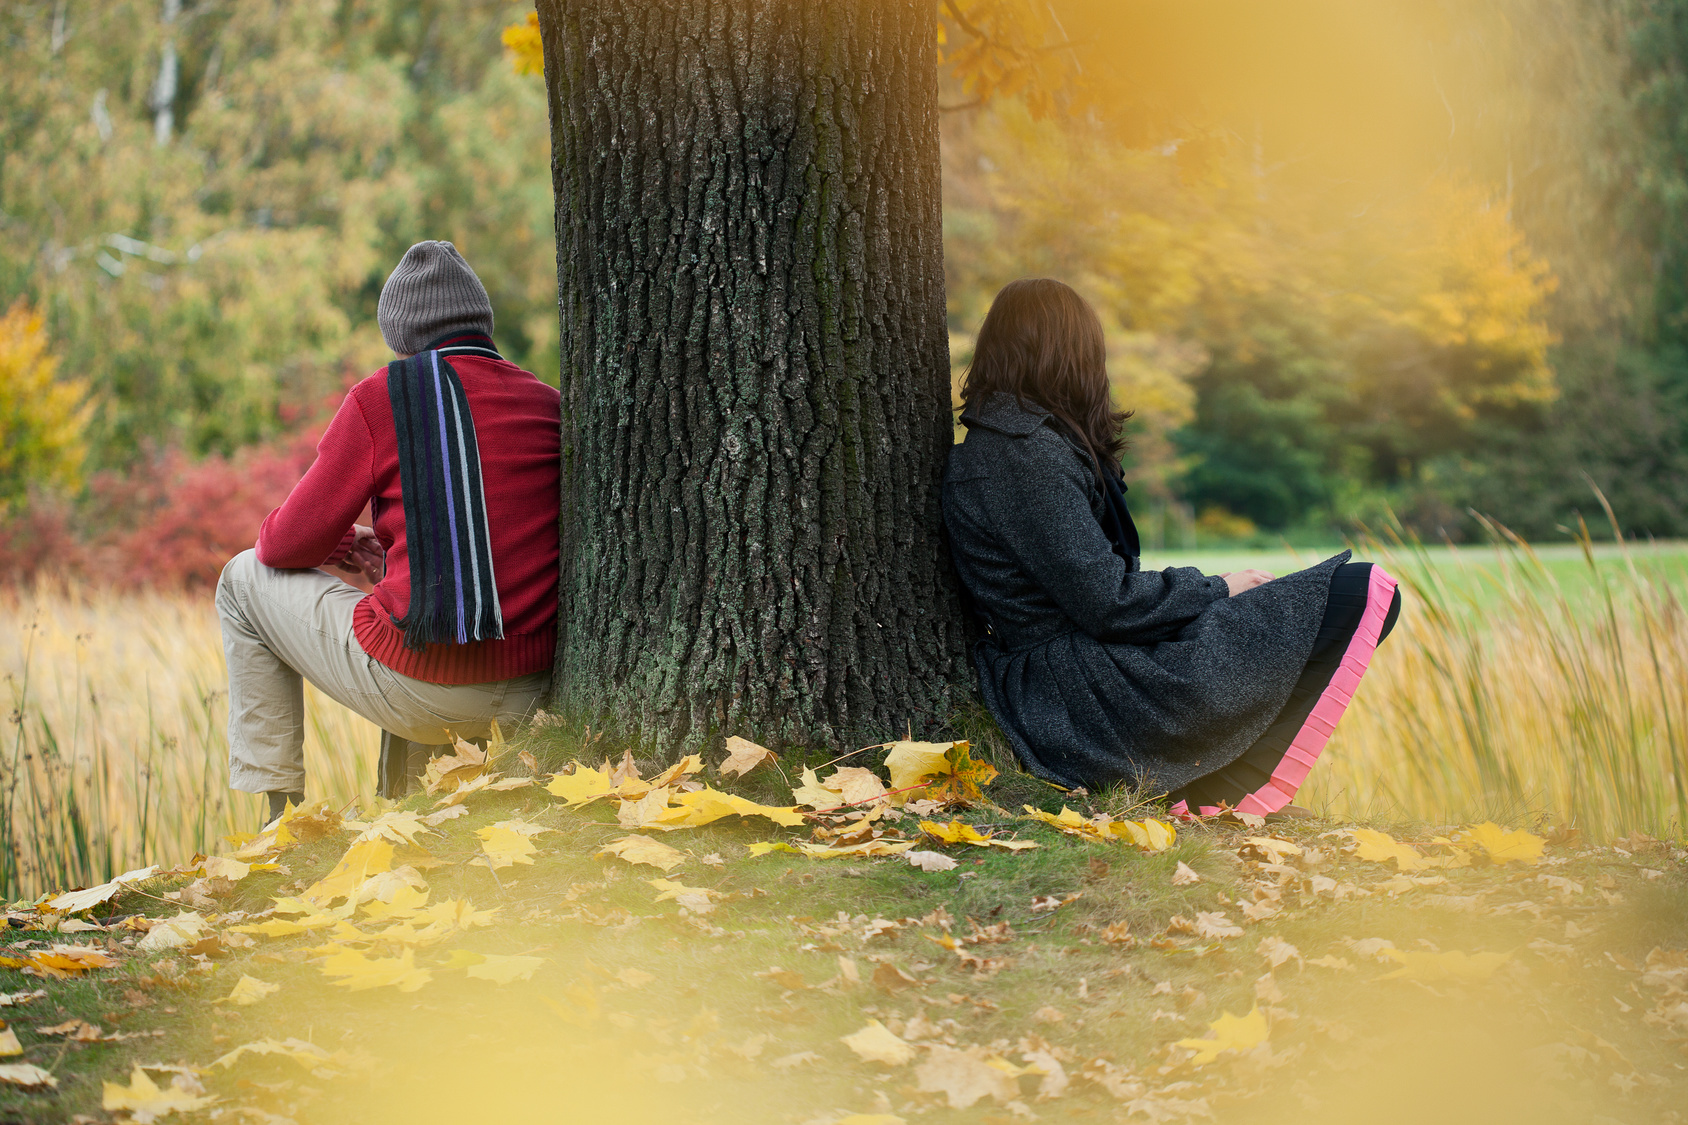 Man and woman contemplating, sat leaning on tree.